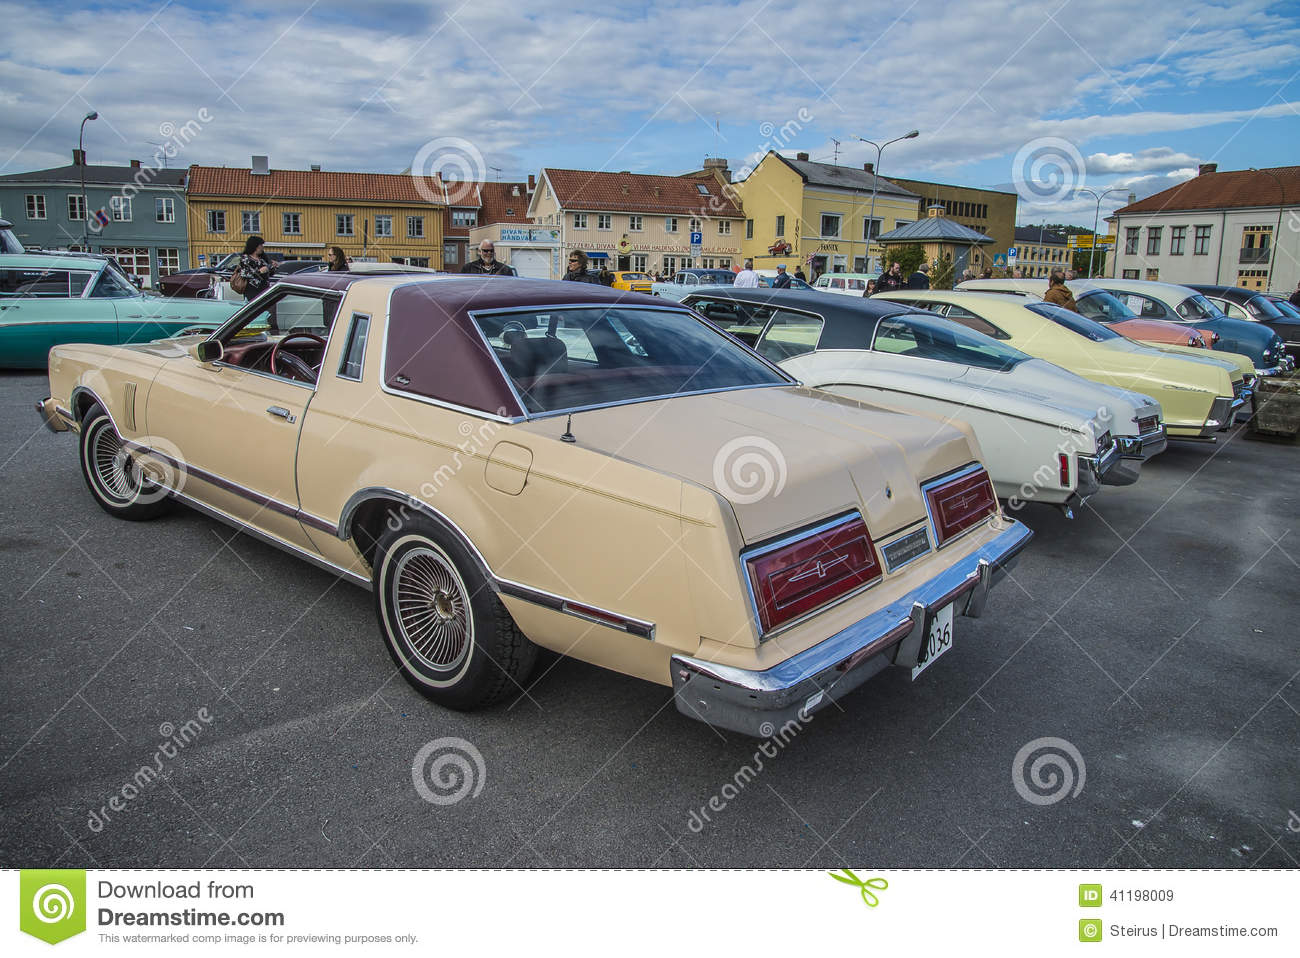 1979 ford thunderbird heritage edition editorial stock image image 41198009. Black Bedroom Furniture Sets. Home Design Ideas